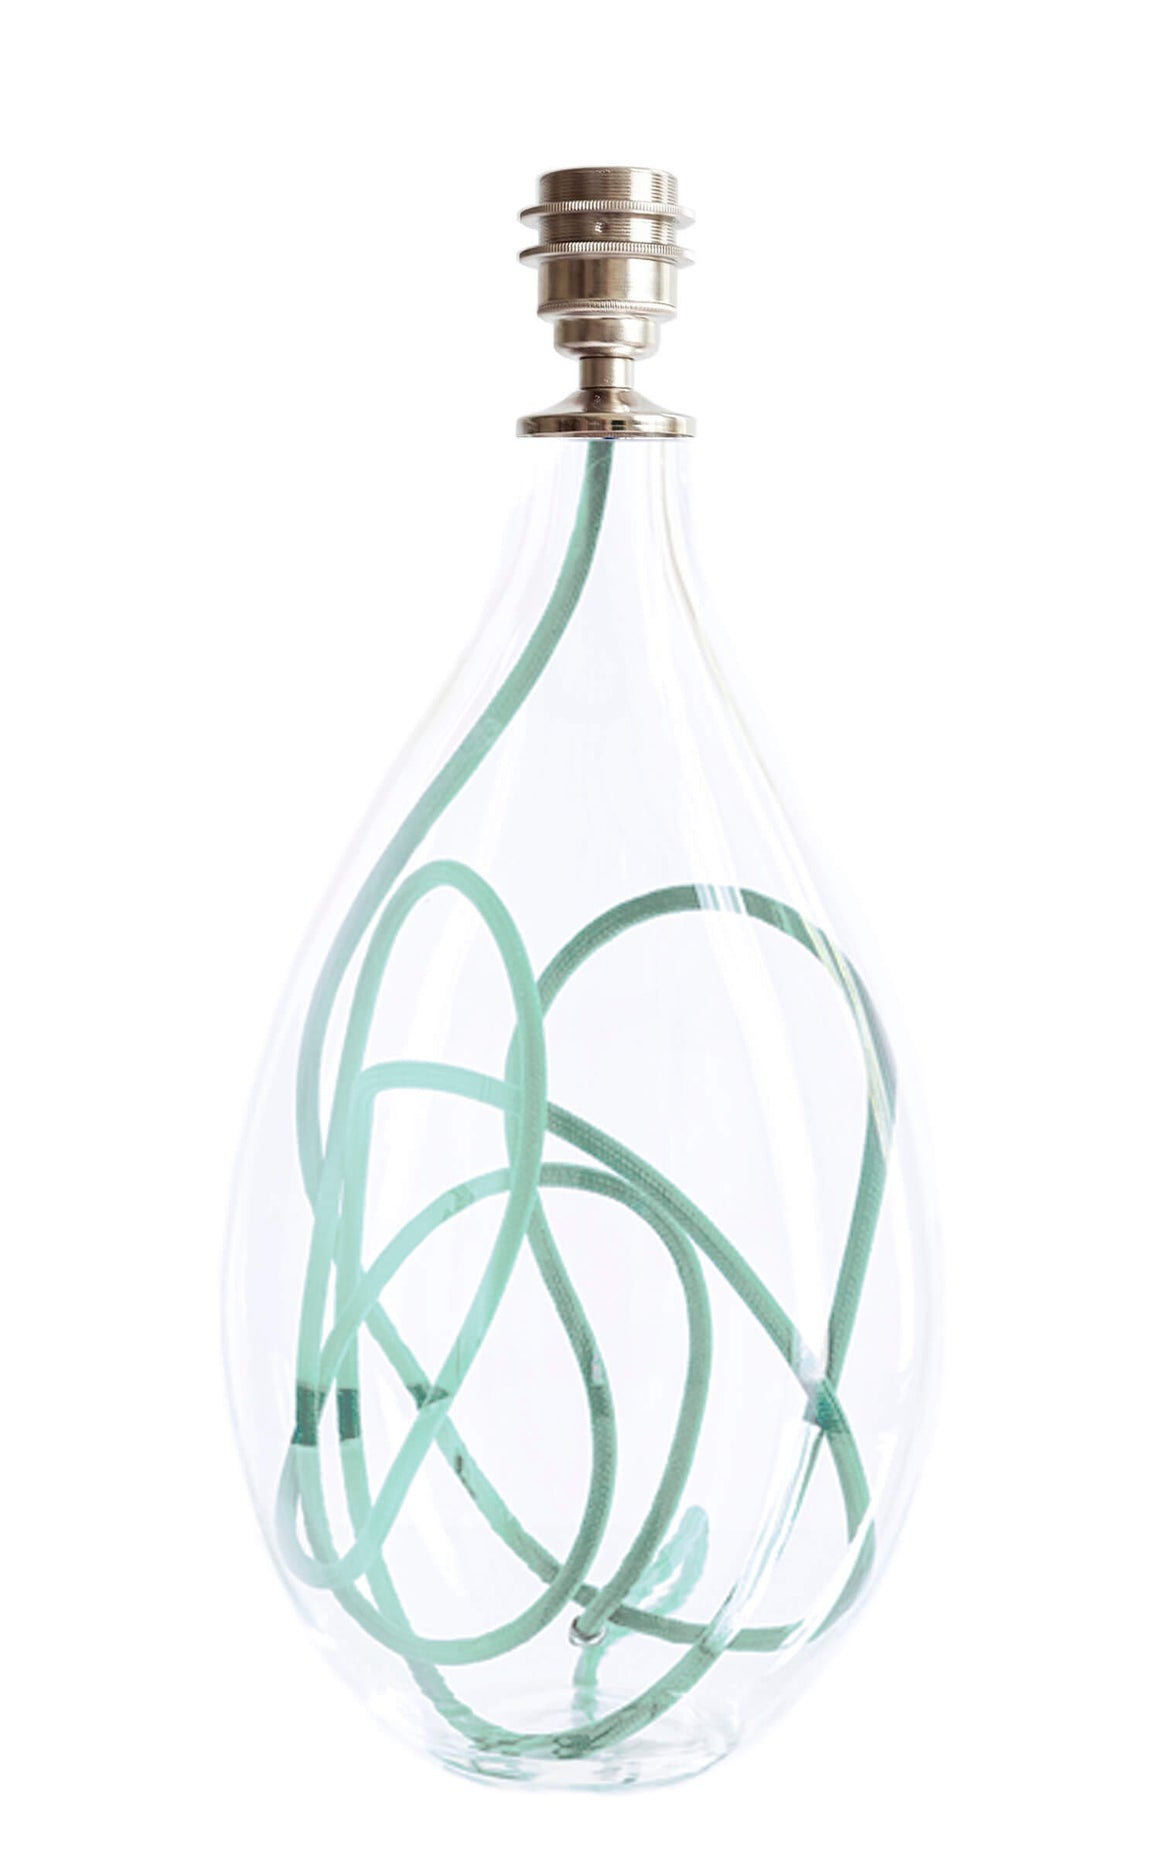 Glass lamp base with jade flex, designed by Anna Jacobs